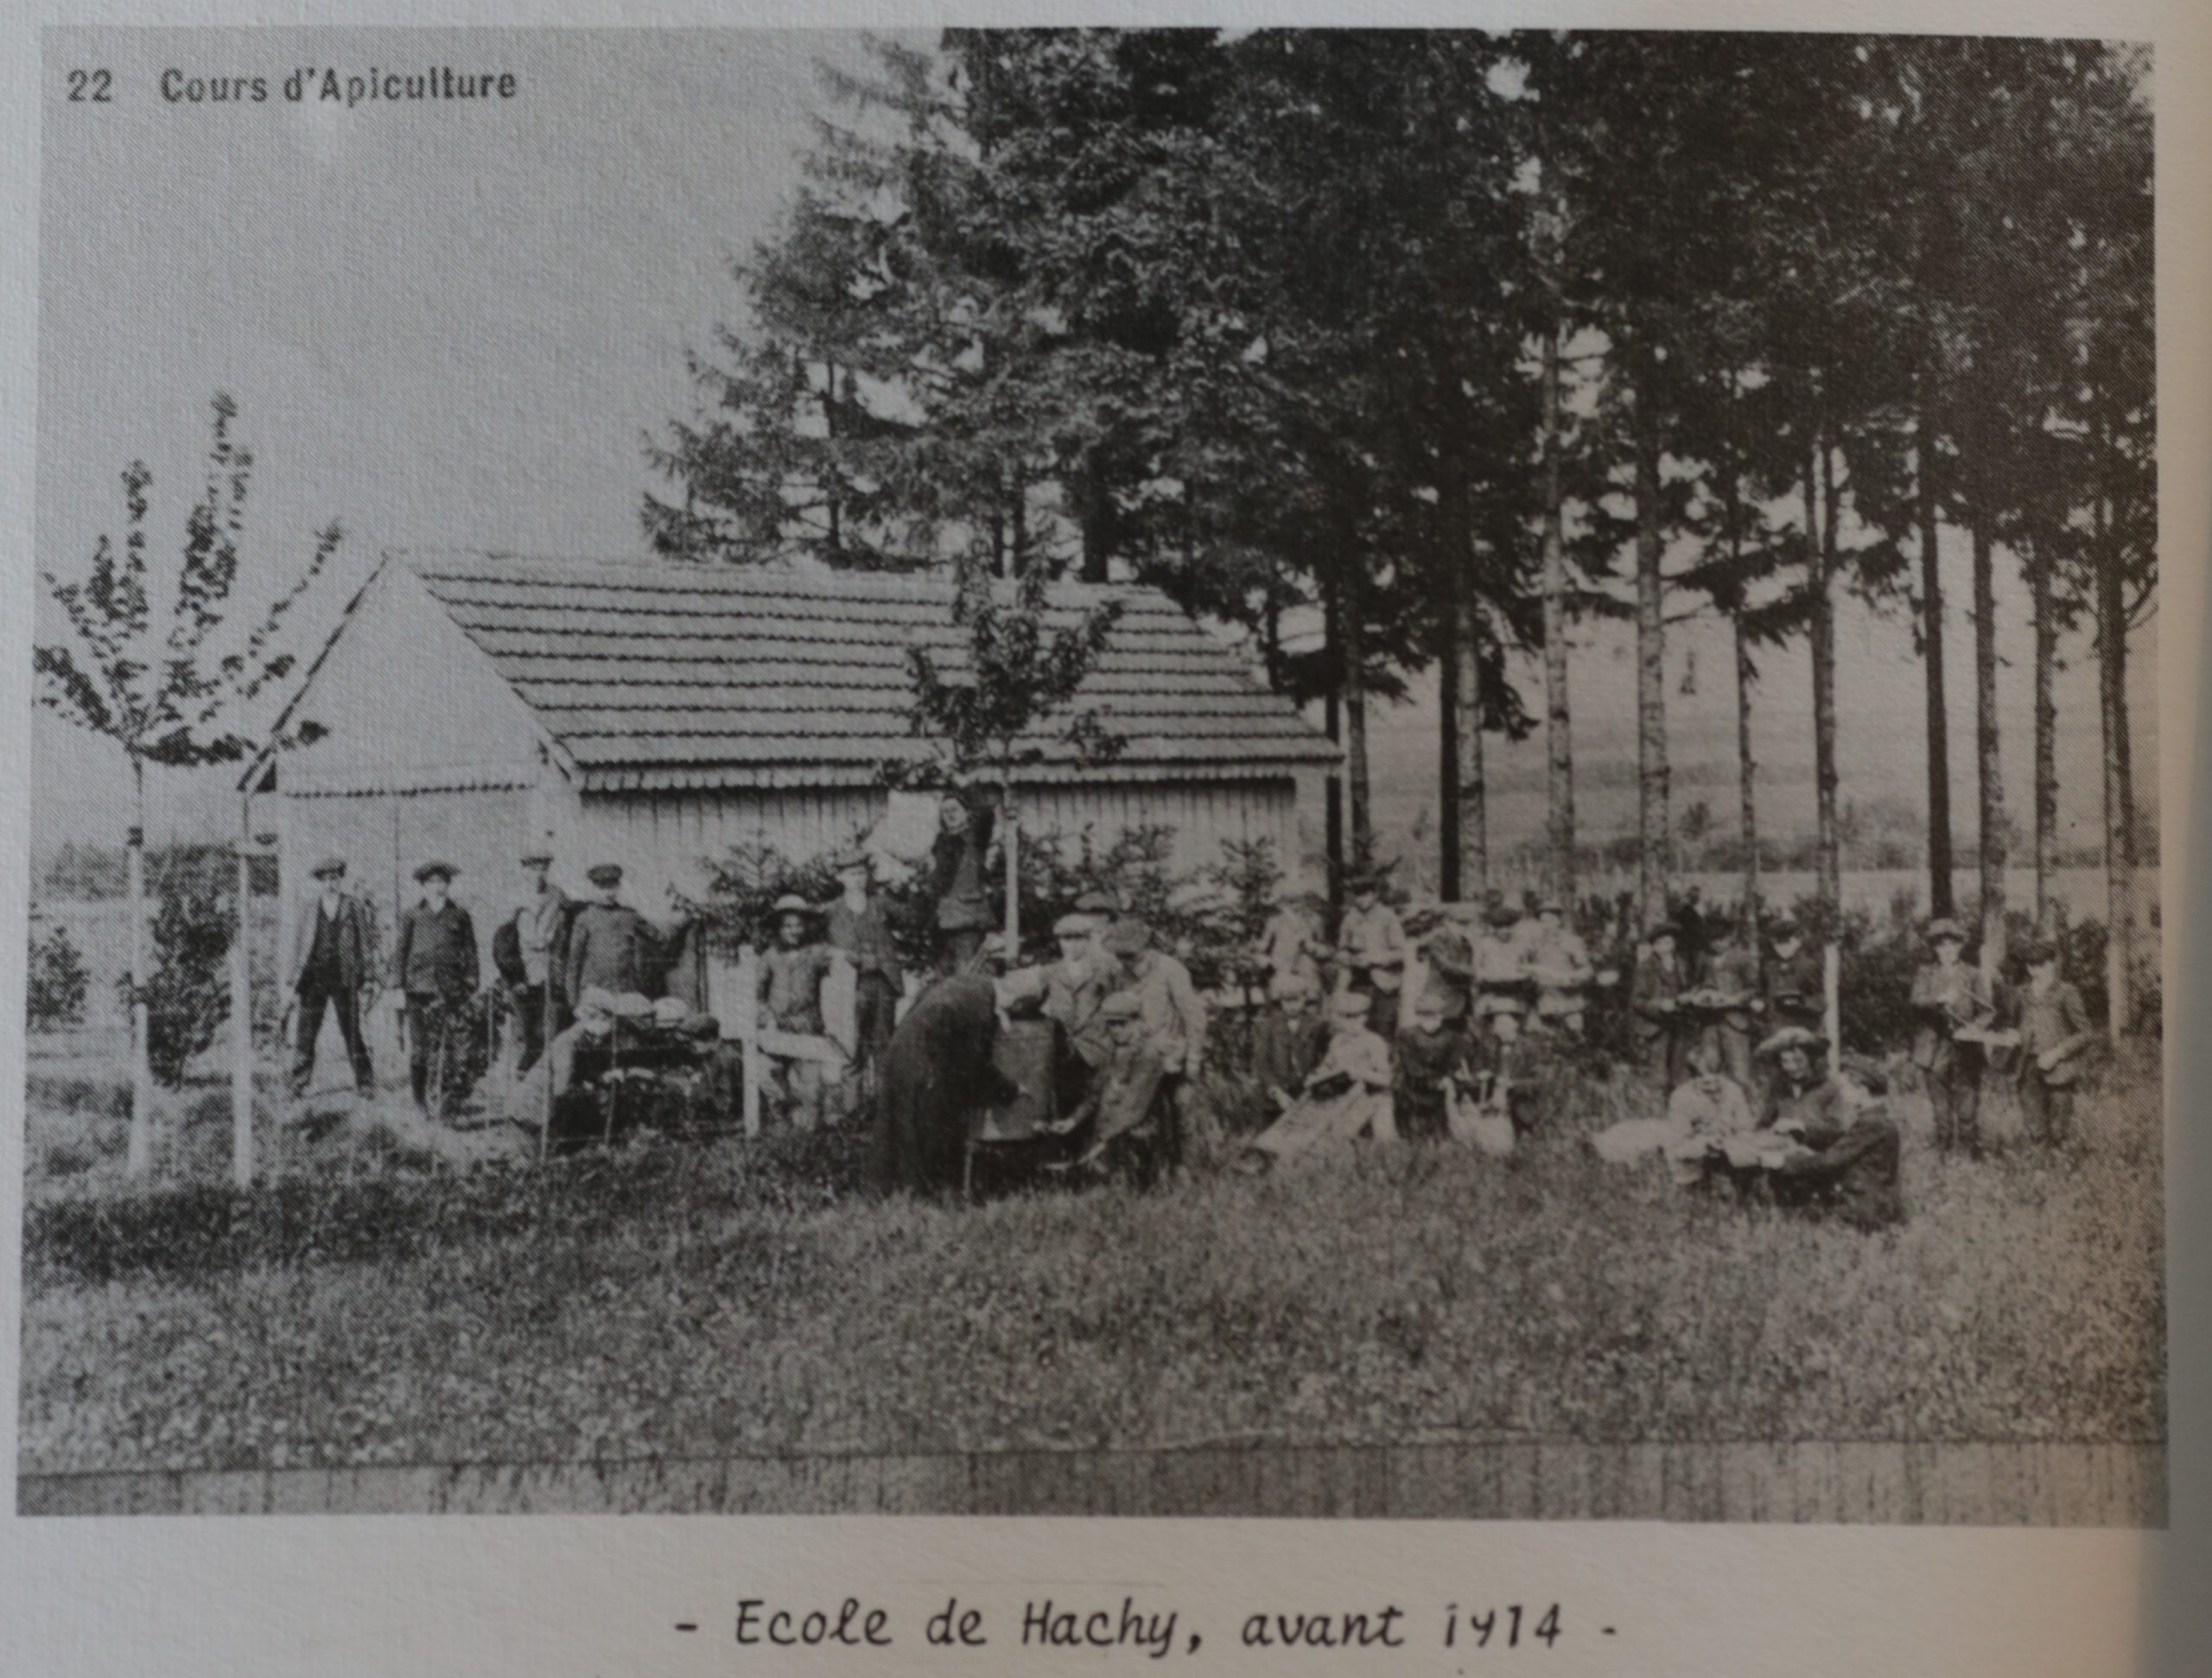 Ecole-apiculture-hachy-avant1914-scaled